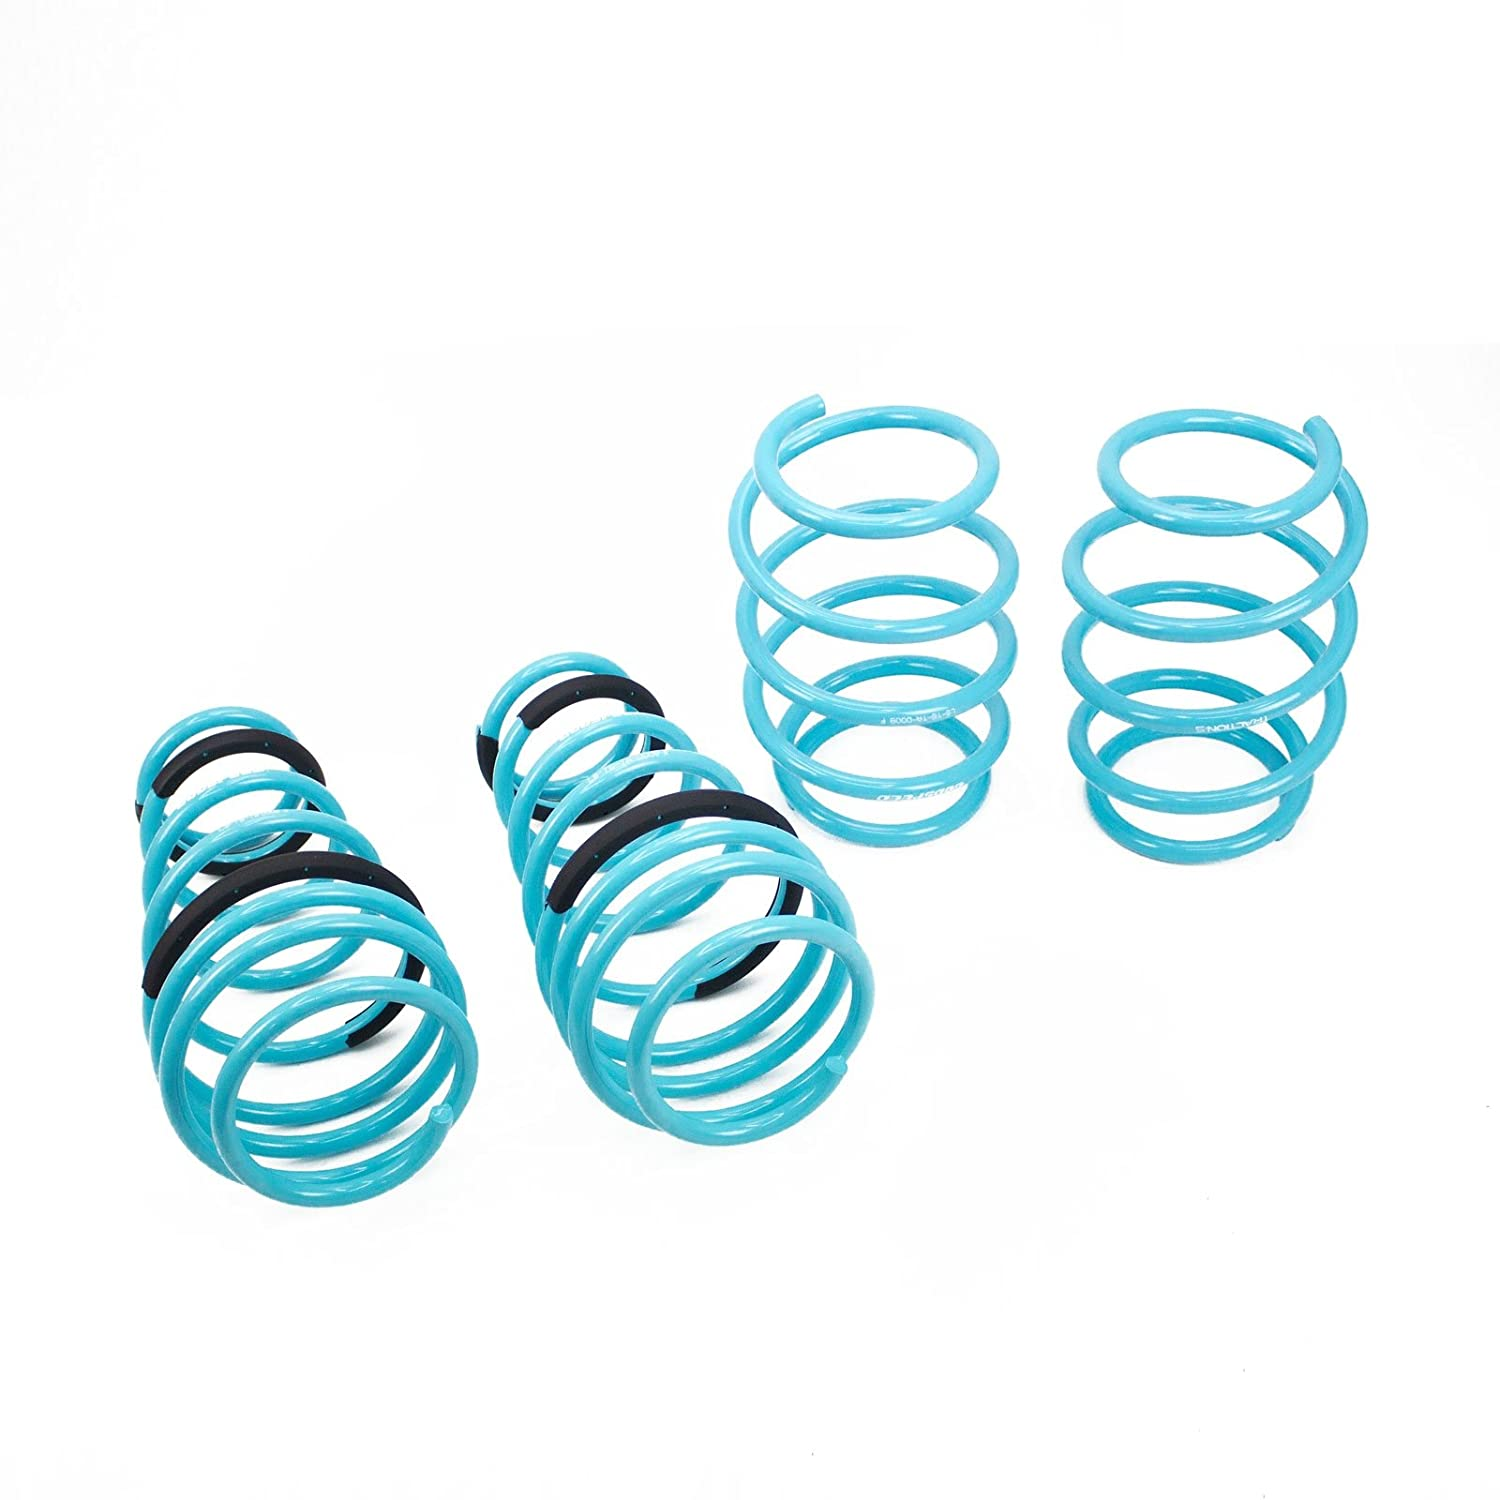 Godspeed LS-TS-TA-0009 Traction-S Performance Lowering Springs Improved Handling Reduce Body Roll Set of 4